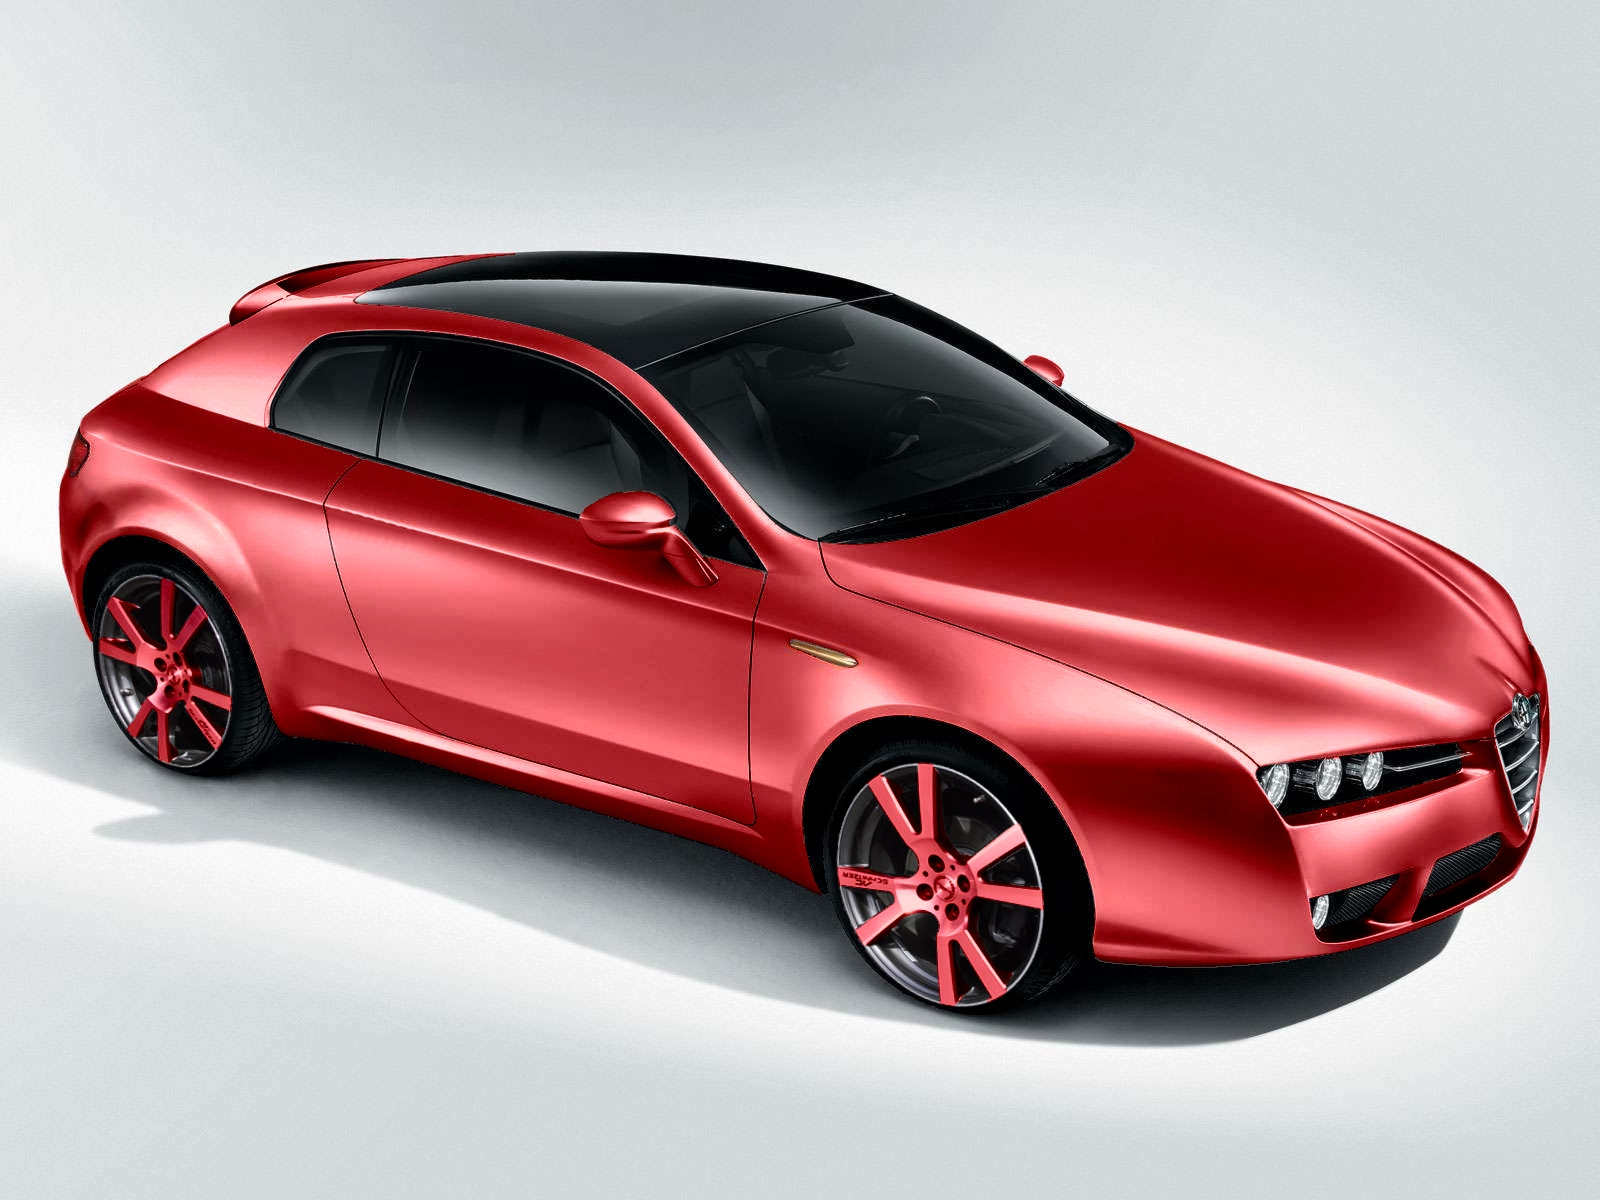 Alfa Romeo Brera Tuning Front High Resolution Image Wallpapers HD